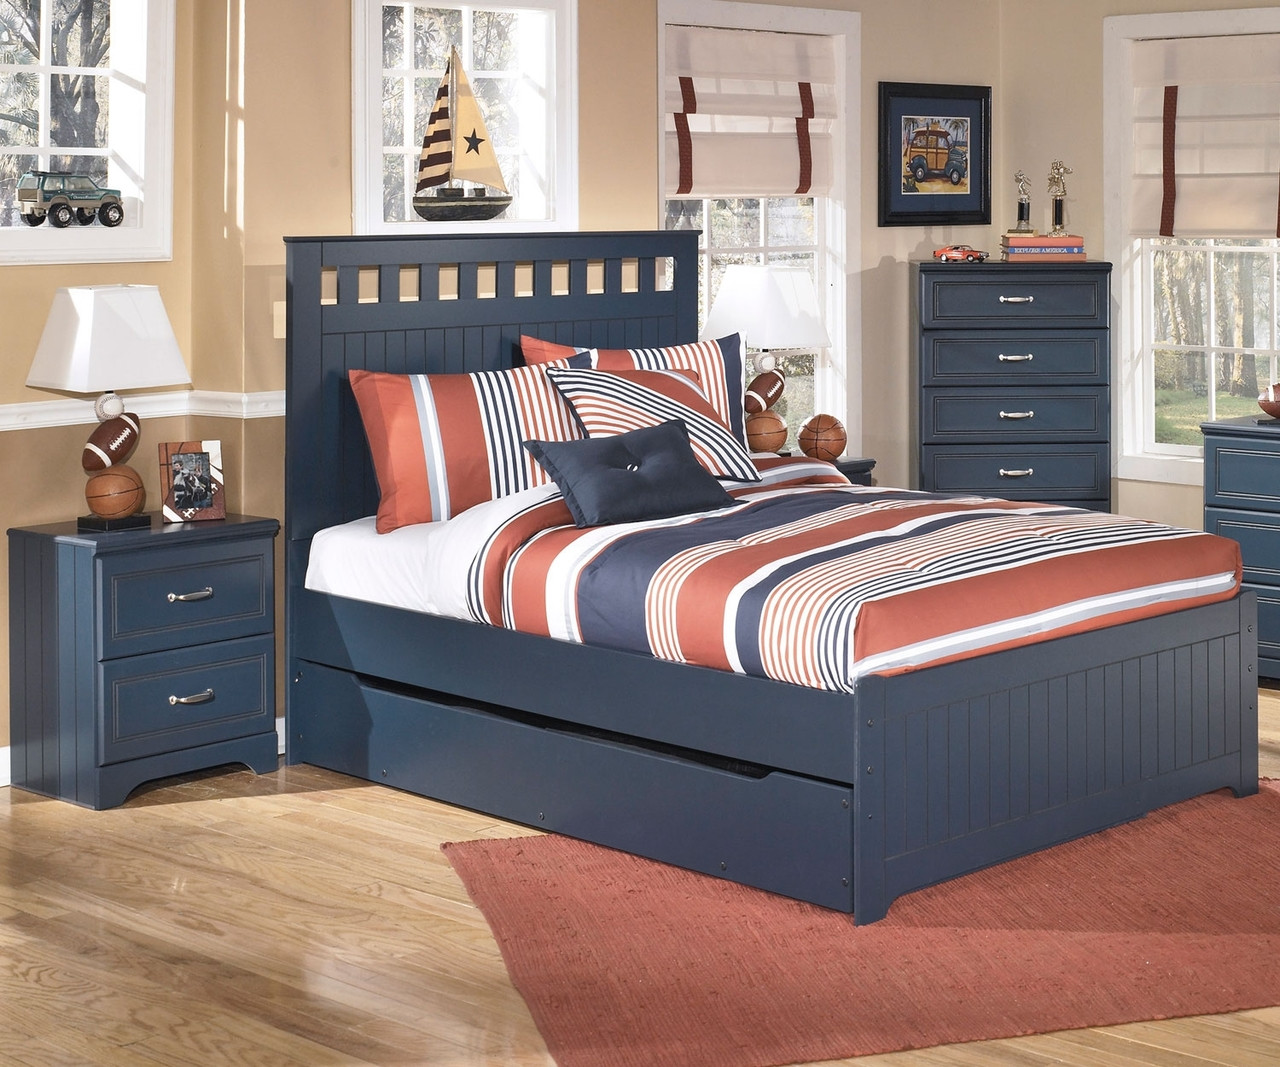 Leo B103 Full Size Panel Bed with Trundle